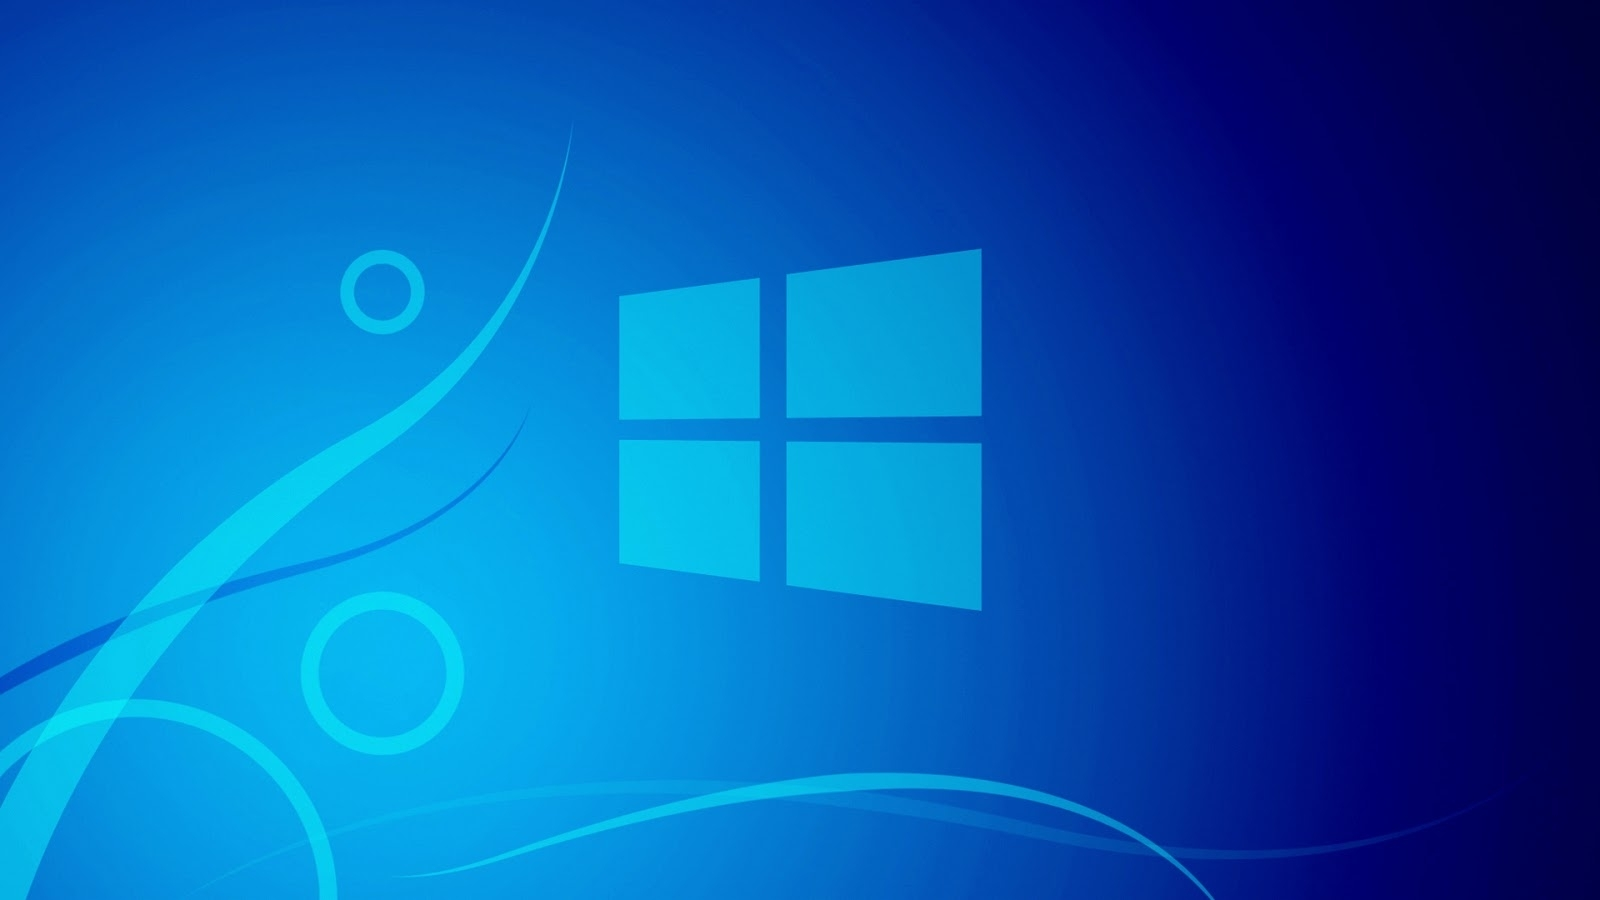 cool 1080p hd wallpapers for windows 8 on image wallpapers with